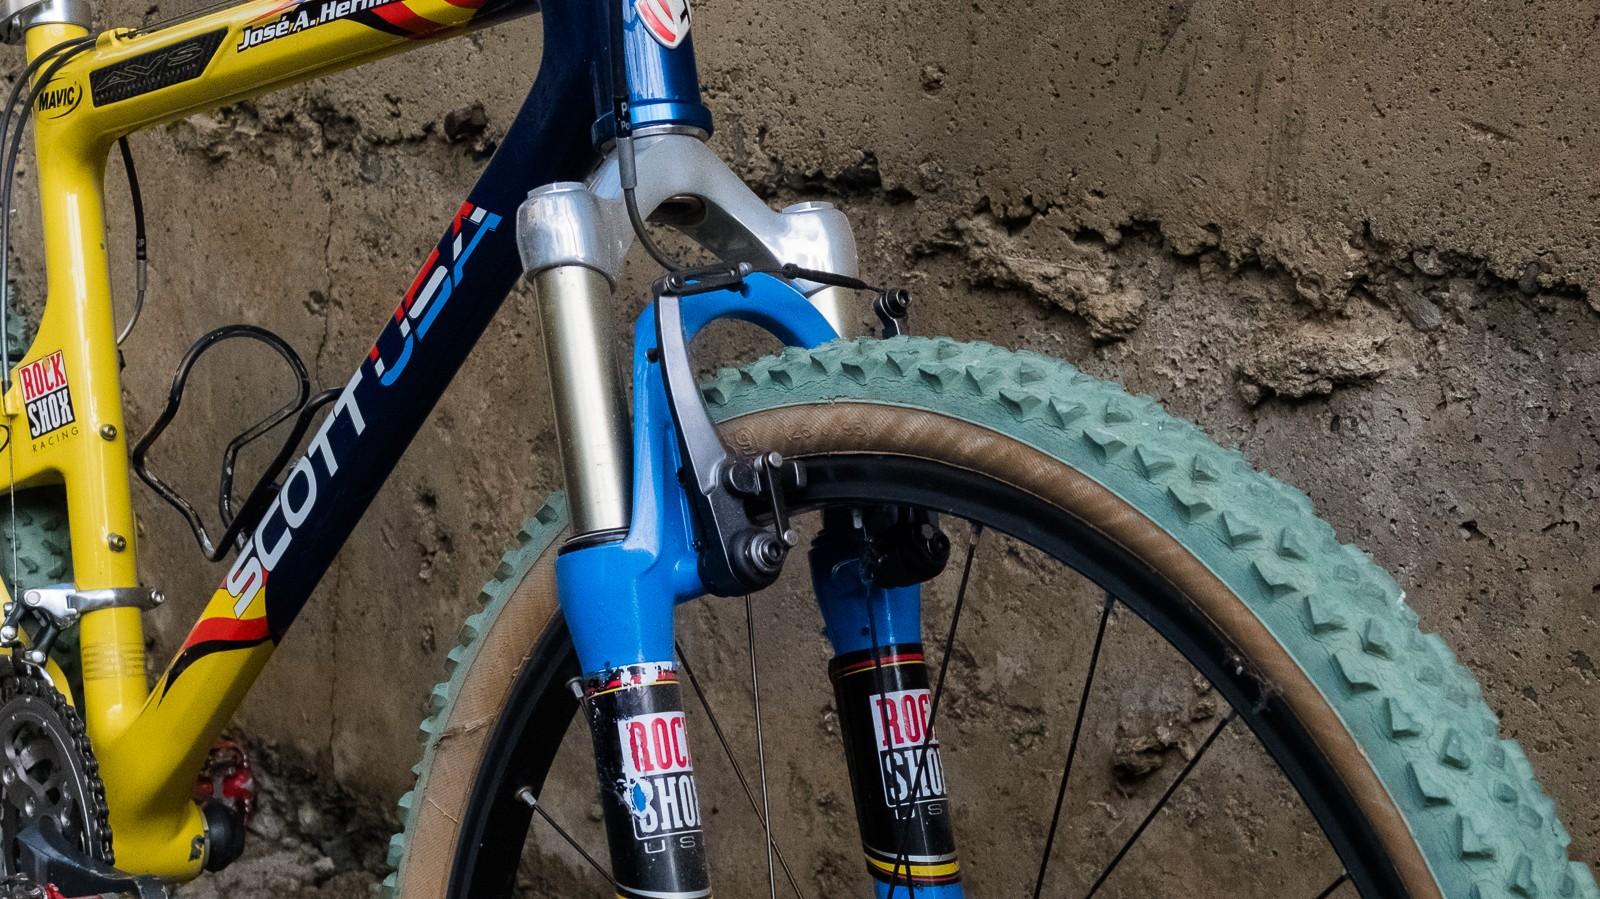 Although nifty, these XTR parallel push brakes weren't the quietest